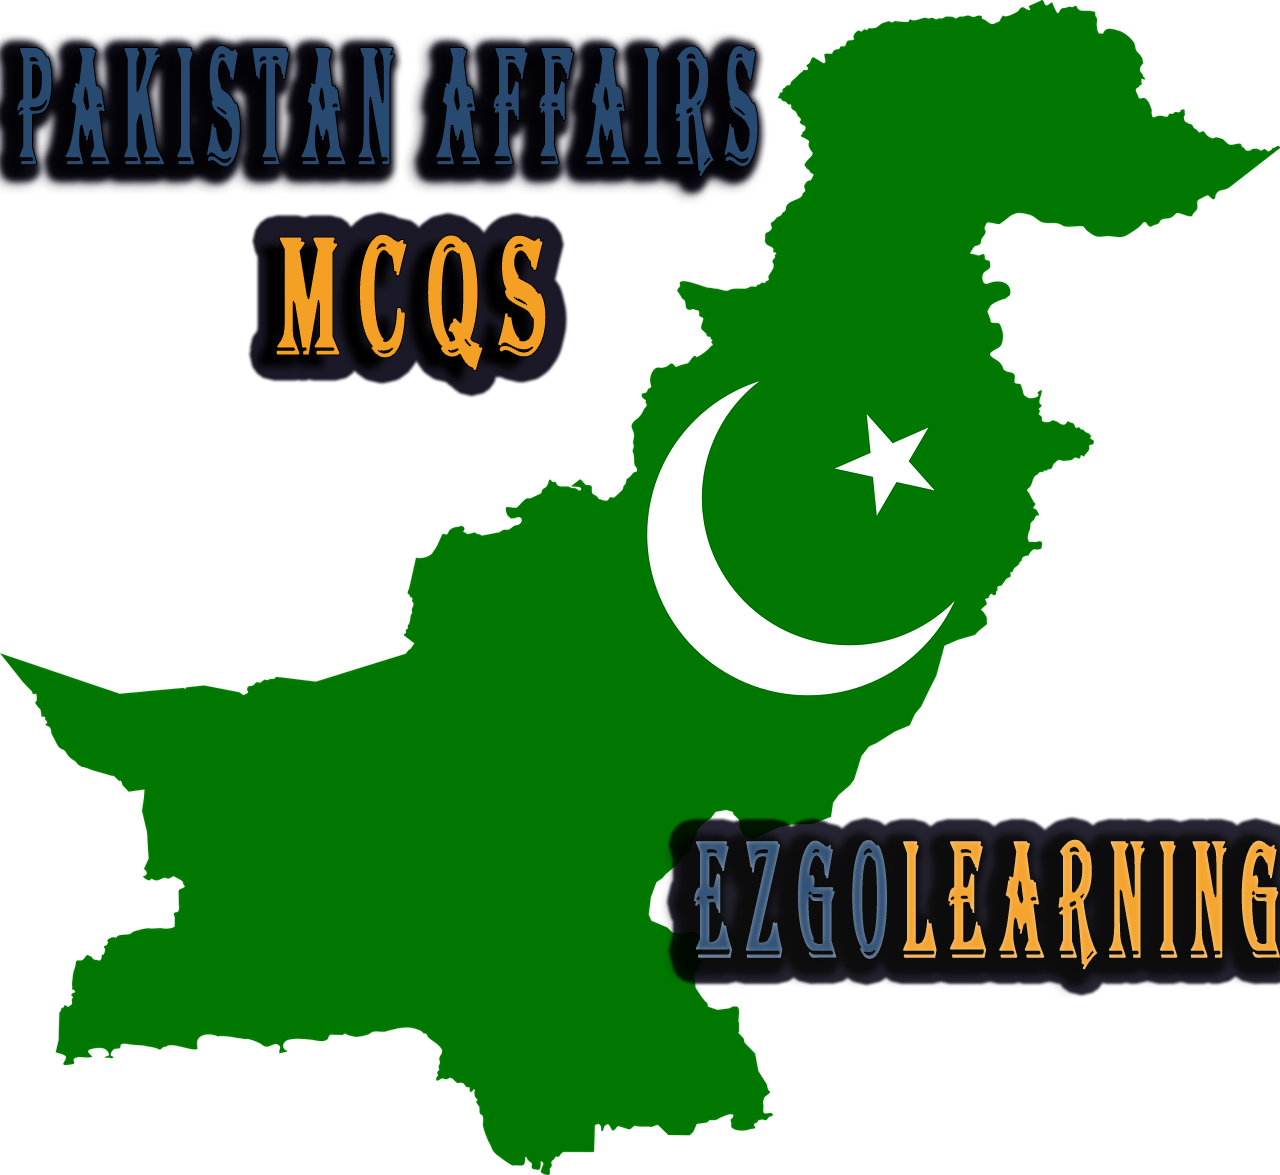 Pakistan Current Affairs MCQS Fpsc,Kppsc,PMS,CSS,Ppsc - Easy